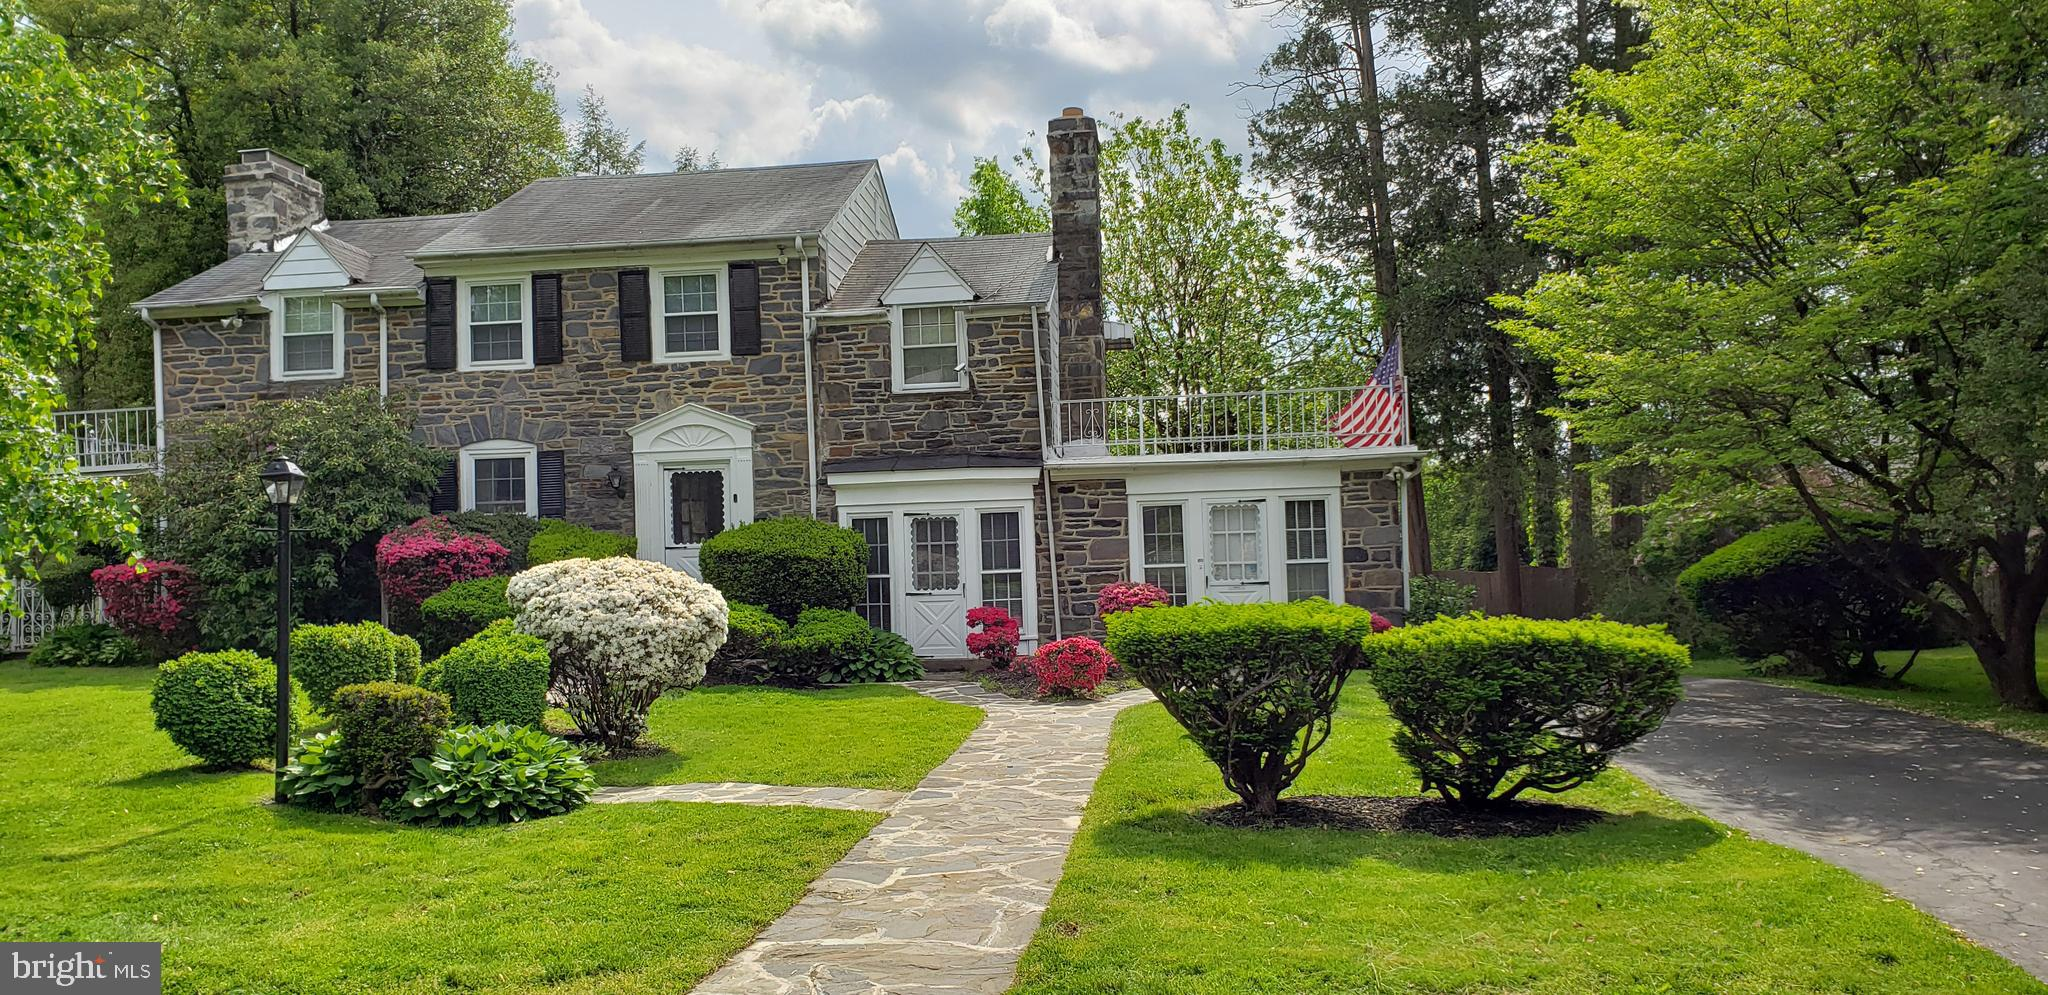 Classic Stone Colonial with multi-generational living potential. Features bright kitchen with  newer refrigerator and garbage disposal (2019), and new flooring 2021.  Large living room with marble fireplace .   First floor bonus:  half bath, 3 walk in storage areas, family room and office with separate outside entrance that can easily be used as an in-law/au-pair/guest suite.   Second floor's 4th bedroom contains the home's 2nd wood burning fireplace,   cedar closet large enough to make into a full bathroom, and a 22' x 14' roof deck.  Finished walkout basement has additional  600 + square  feet with newly installed flooring (2020) in the large multi-purpose and laundry rooms.  Also, has 2 walk-in storage areas and a half bathroom.  Other 2020 improvements include new energy efficient water heater,  rebuilt flagstone porch roof, painted exterior trim and siding, resurfaced driveway and silver coated roof deck .  Yard  has built in stone barbeque pit  and is large enough for a pool.   Home warranty includes all AS IS appliances. This home is a rare find with loads of storage and possibilities waiting for your personal touches.    Located in the award-winning Lower Merion School District.  Minutes from St. Joseph University, transportation,  shopping, restaurants, golf courses.   Current owners have enjoyed this wonderful home and neighborhood for over 20 satisfying years. Owners are licensed real estate agents